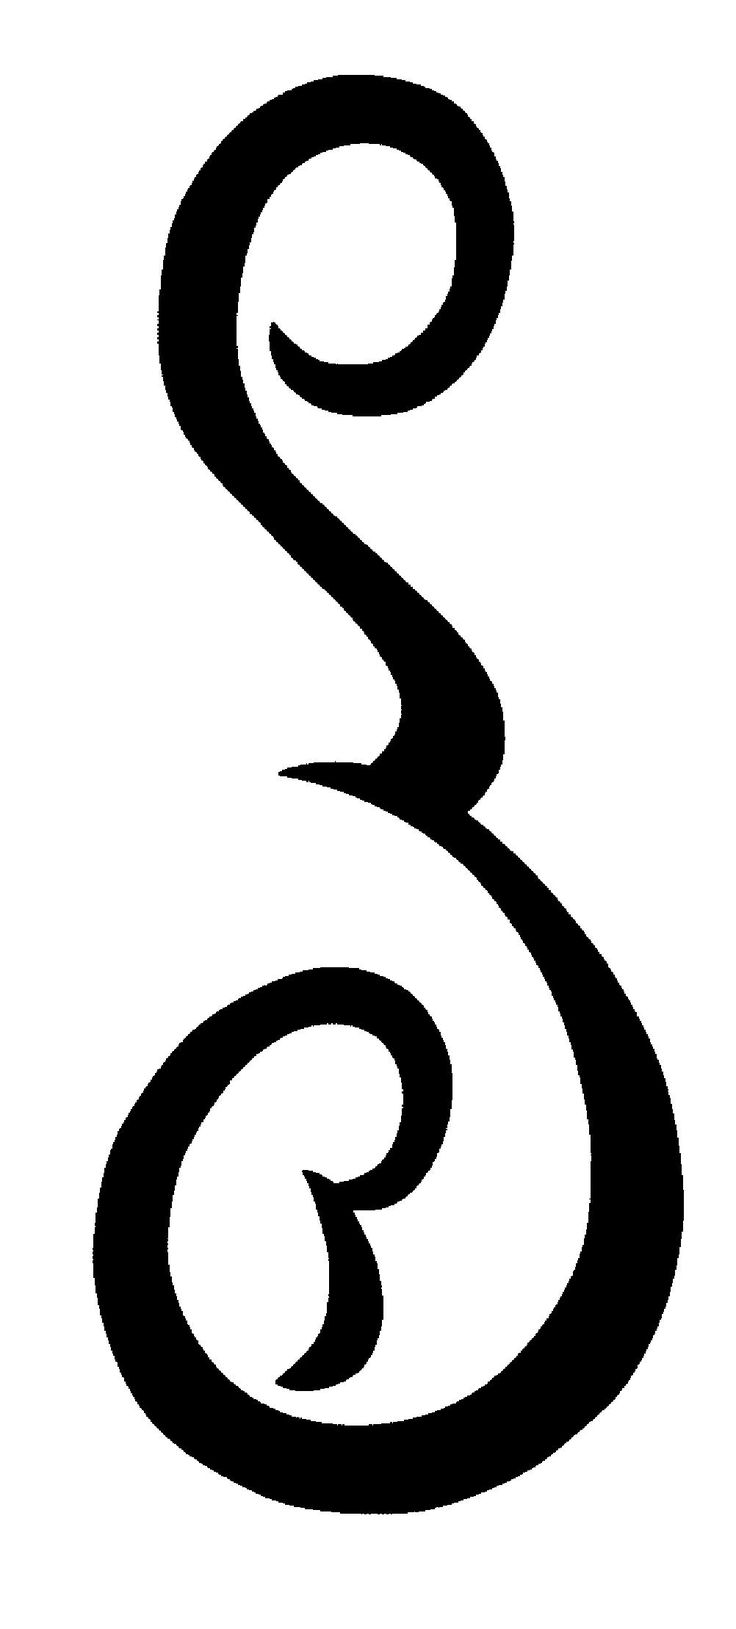 Ooooh, could THIS be my next tattoo?  Maybe on my neck?  Or hip (next to the stretch marks - haha!)